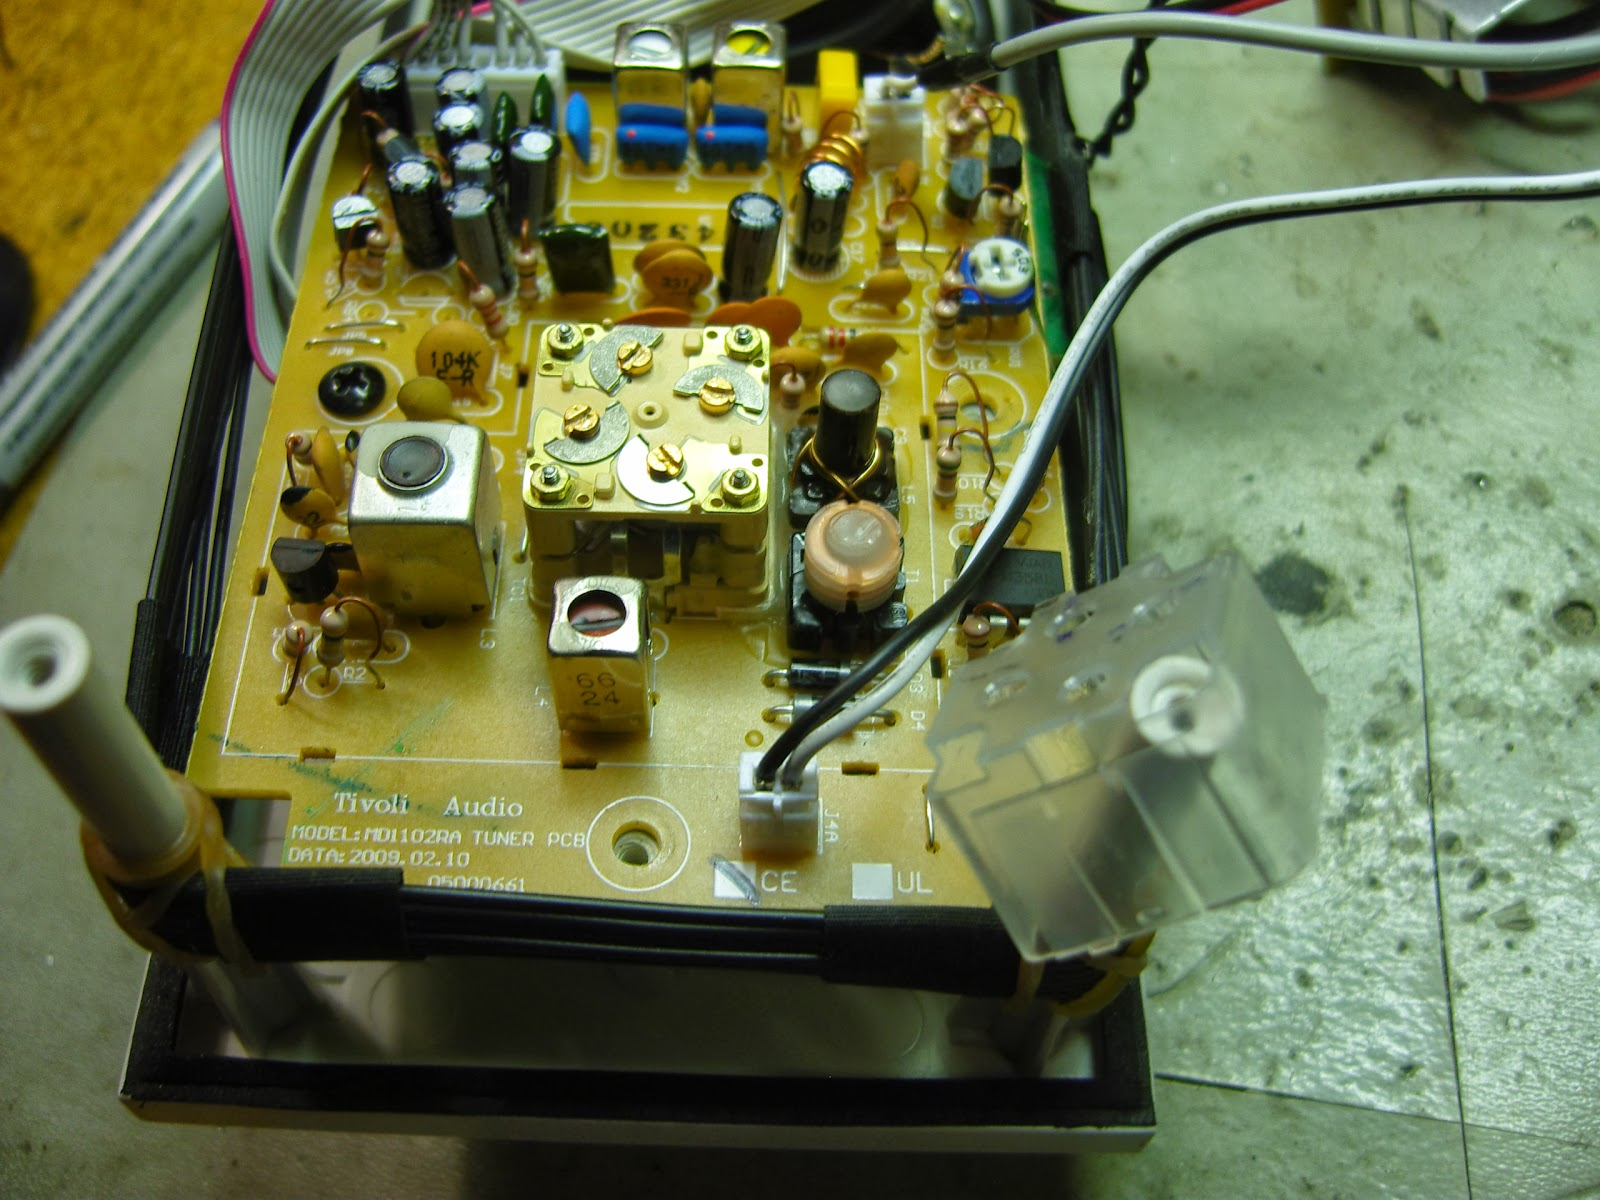 Tivoli Audio Model One Cijena La3za Radio And Electronics Scratchy Tivoli Audio Model One